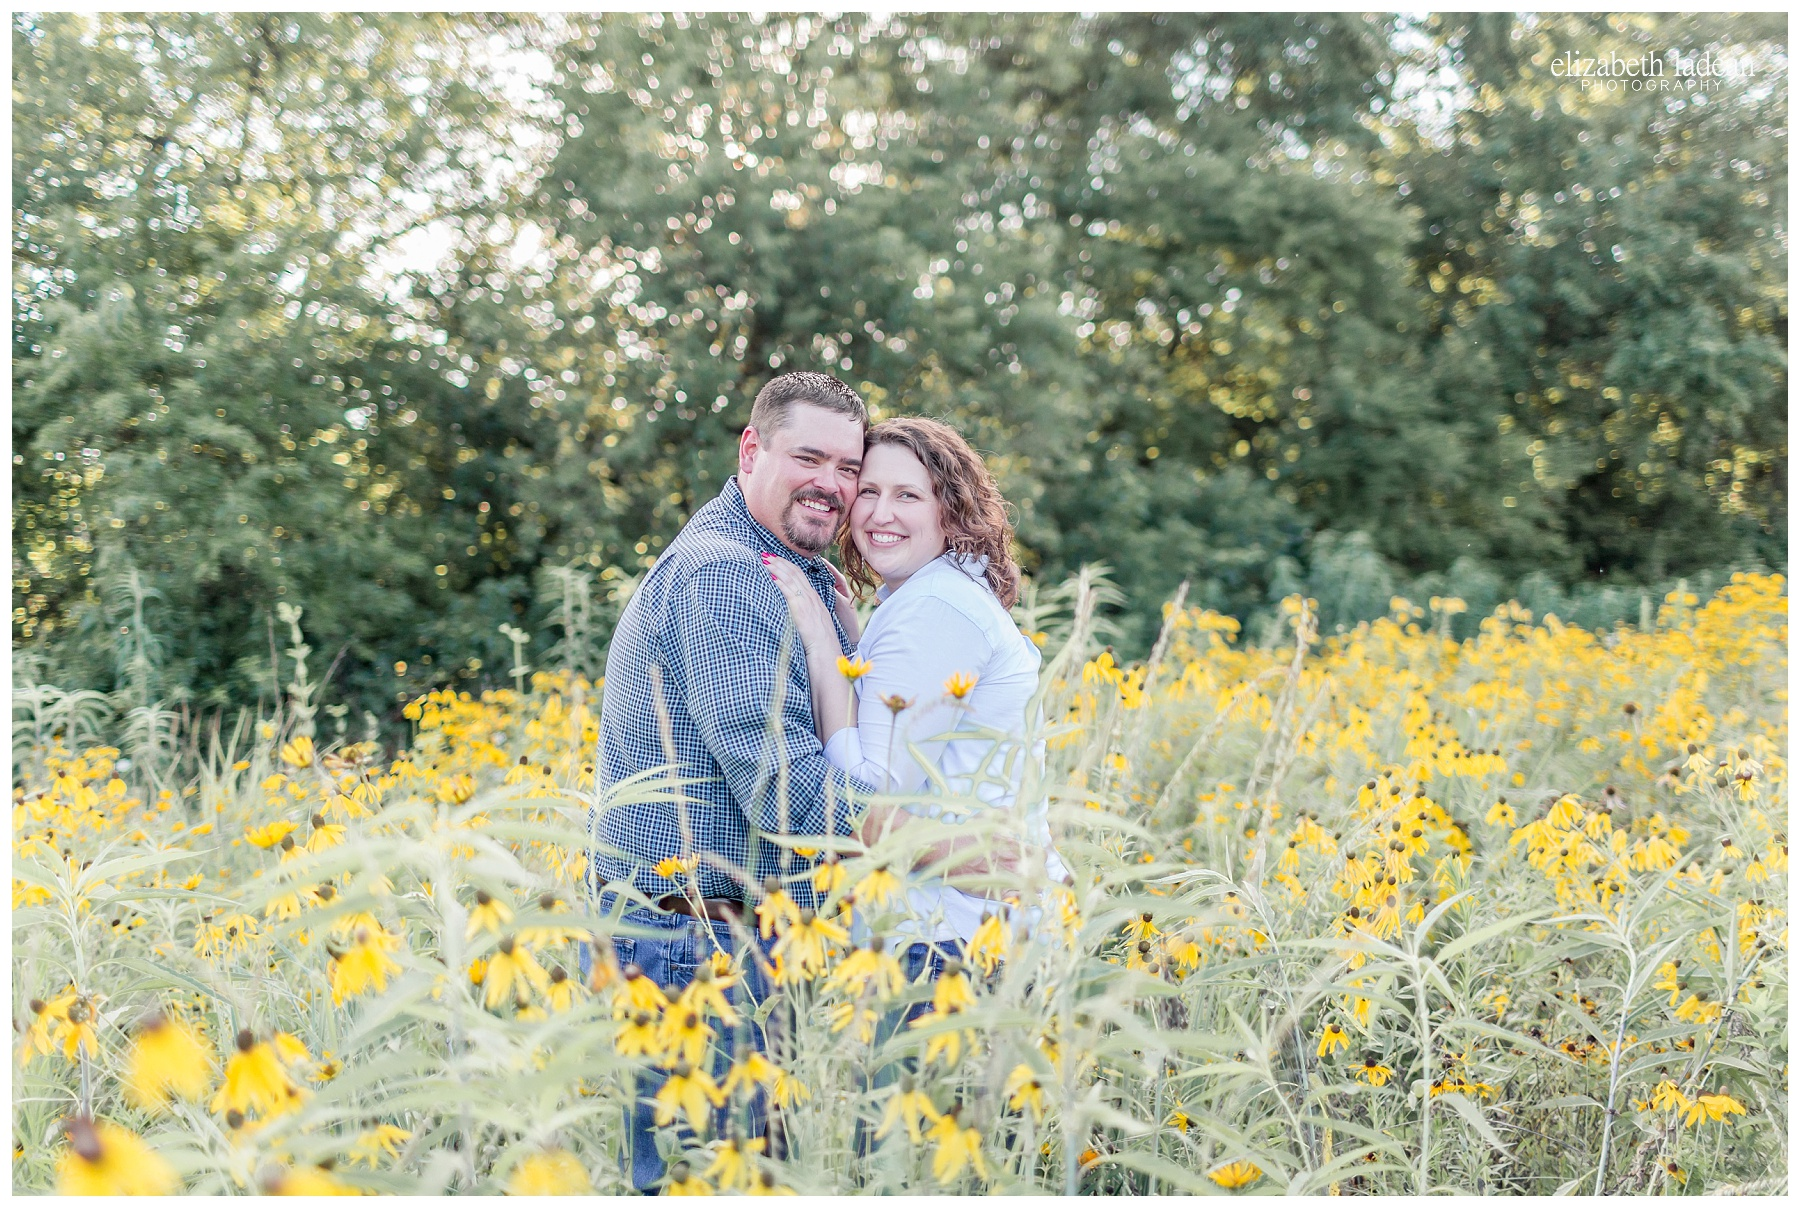 Kansas-City-Engagement-Photography-Shawnee-Mission-H+JJ2017-Elizabeth-Ladean-Photography-photo_1922.jpg